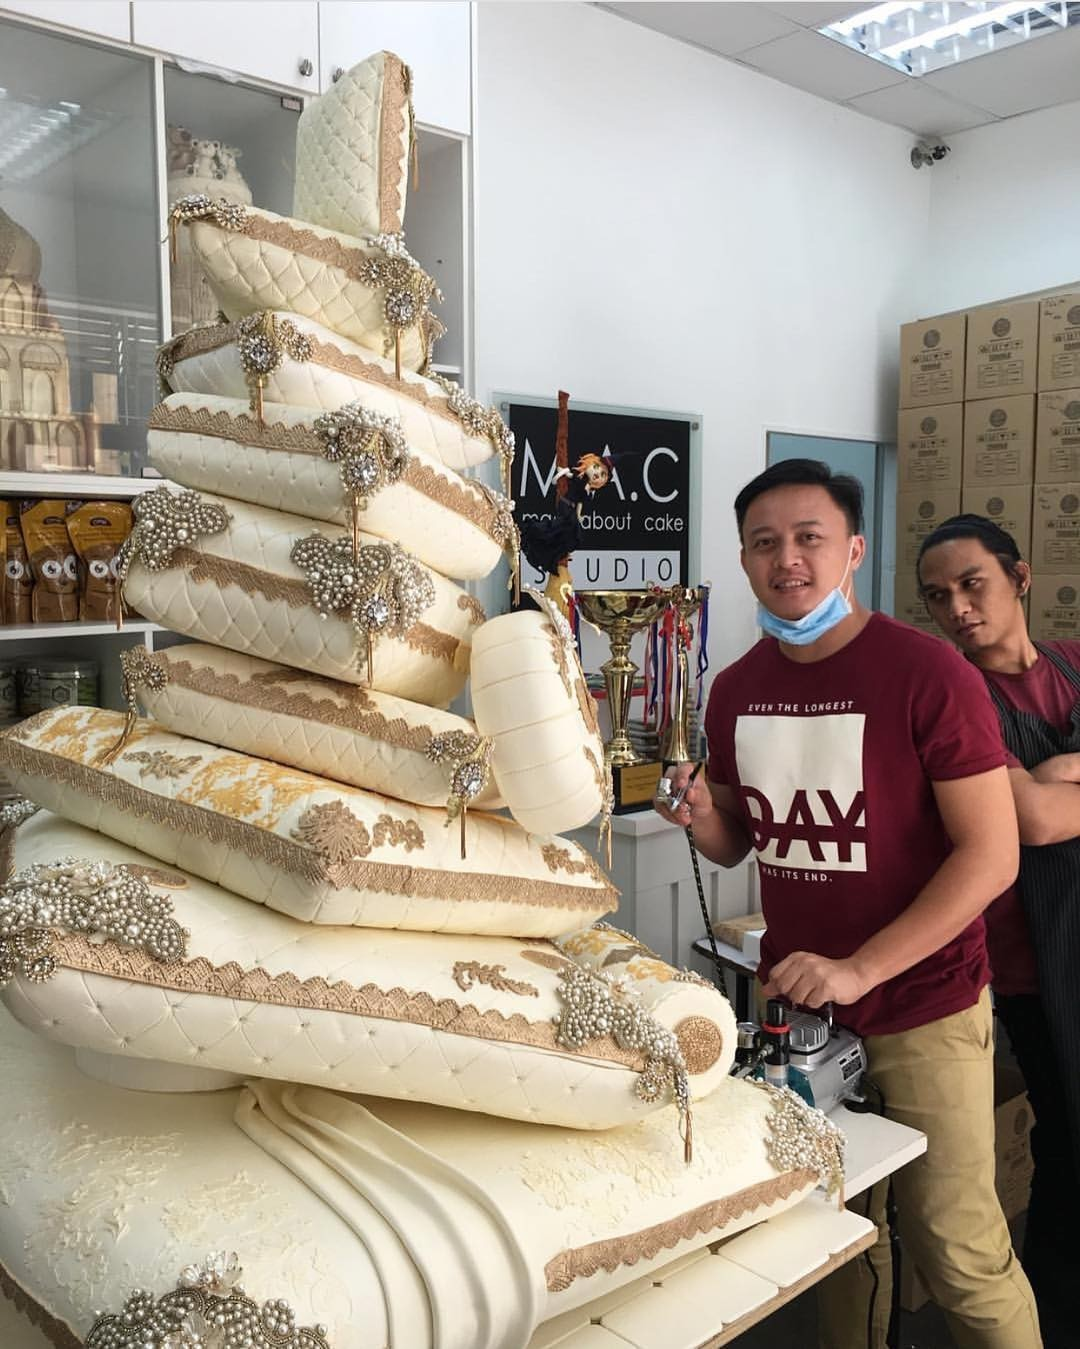 Check out this towering cake made in the shape of pillows